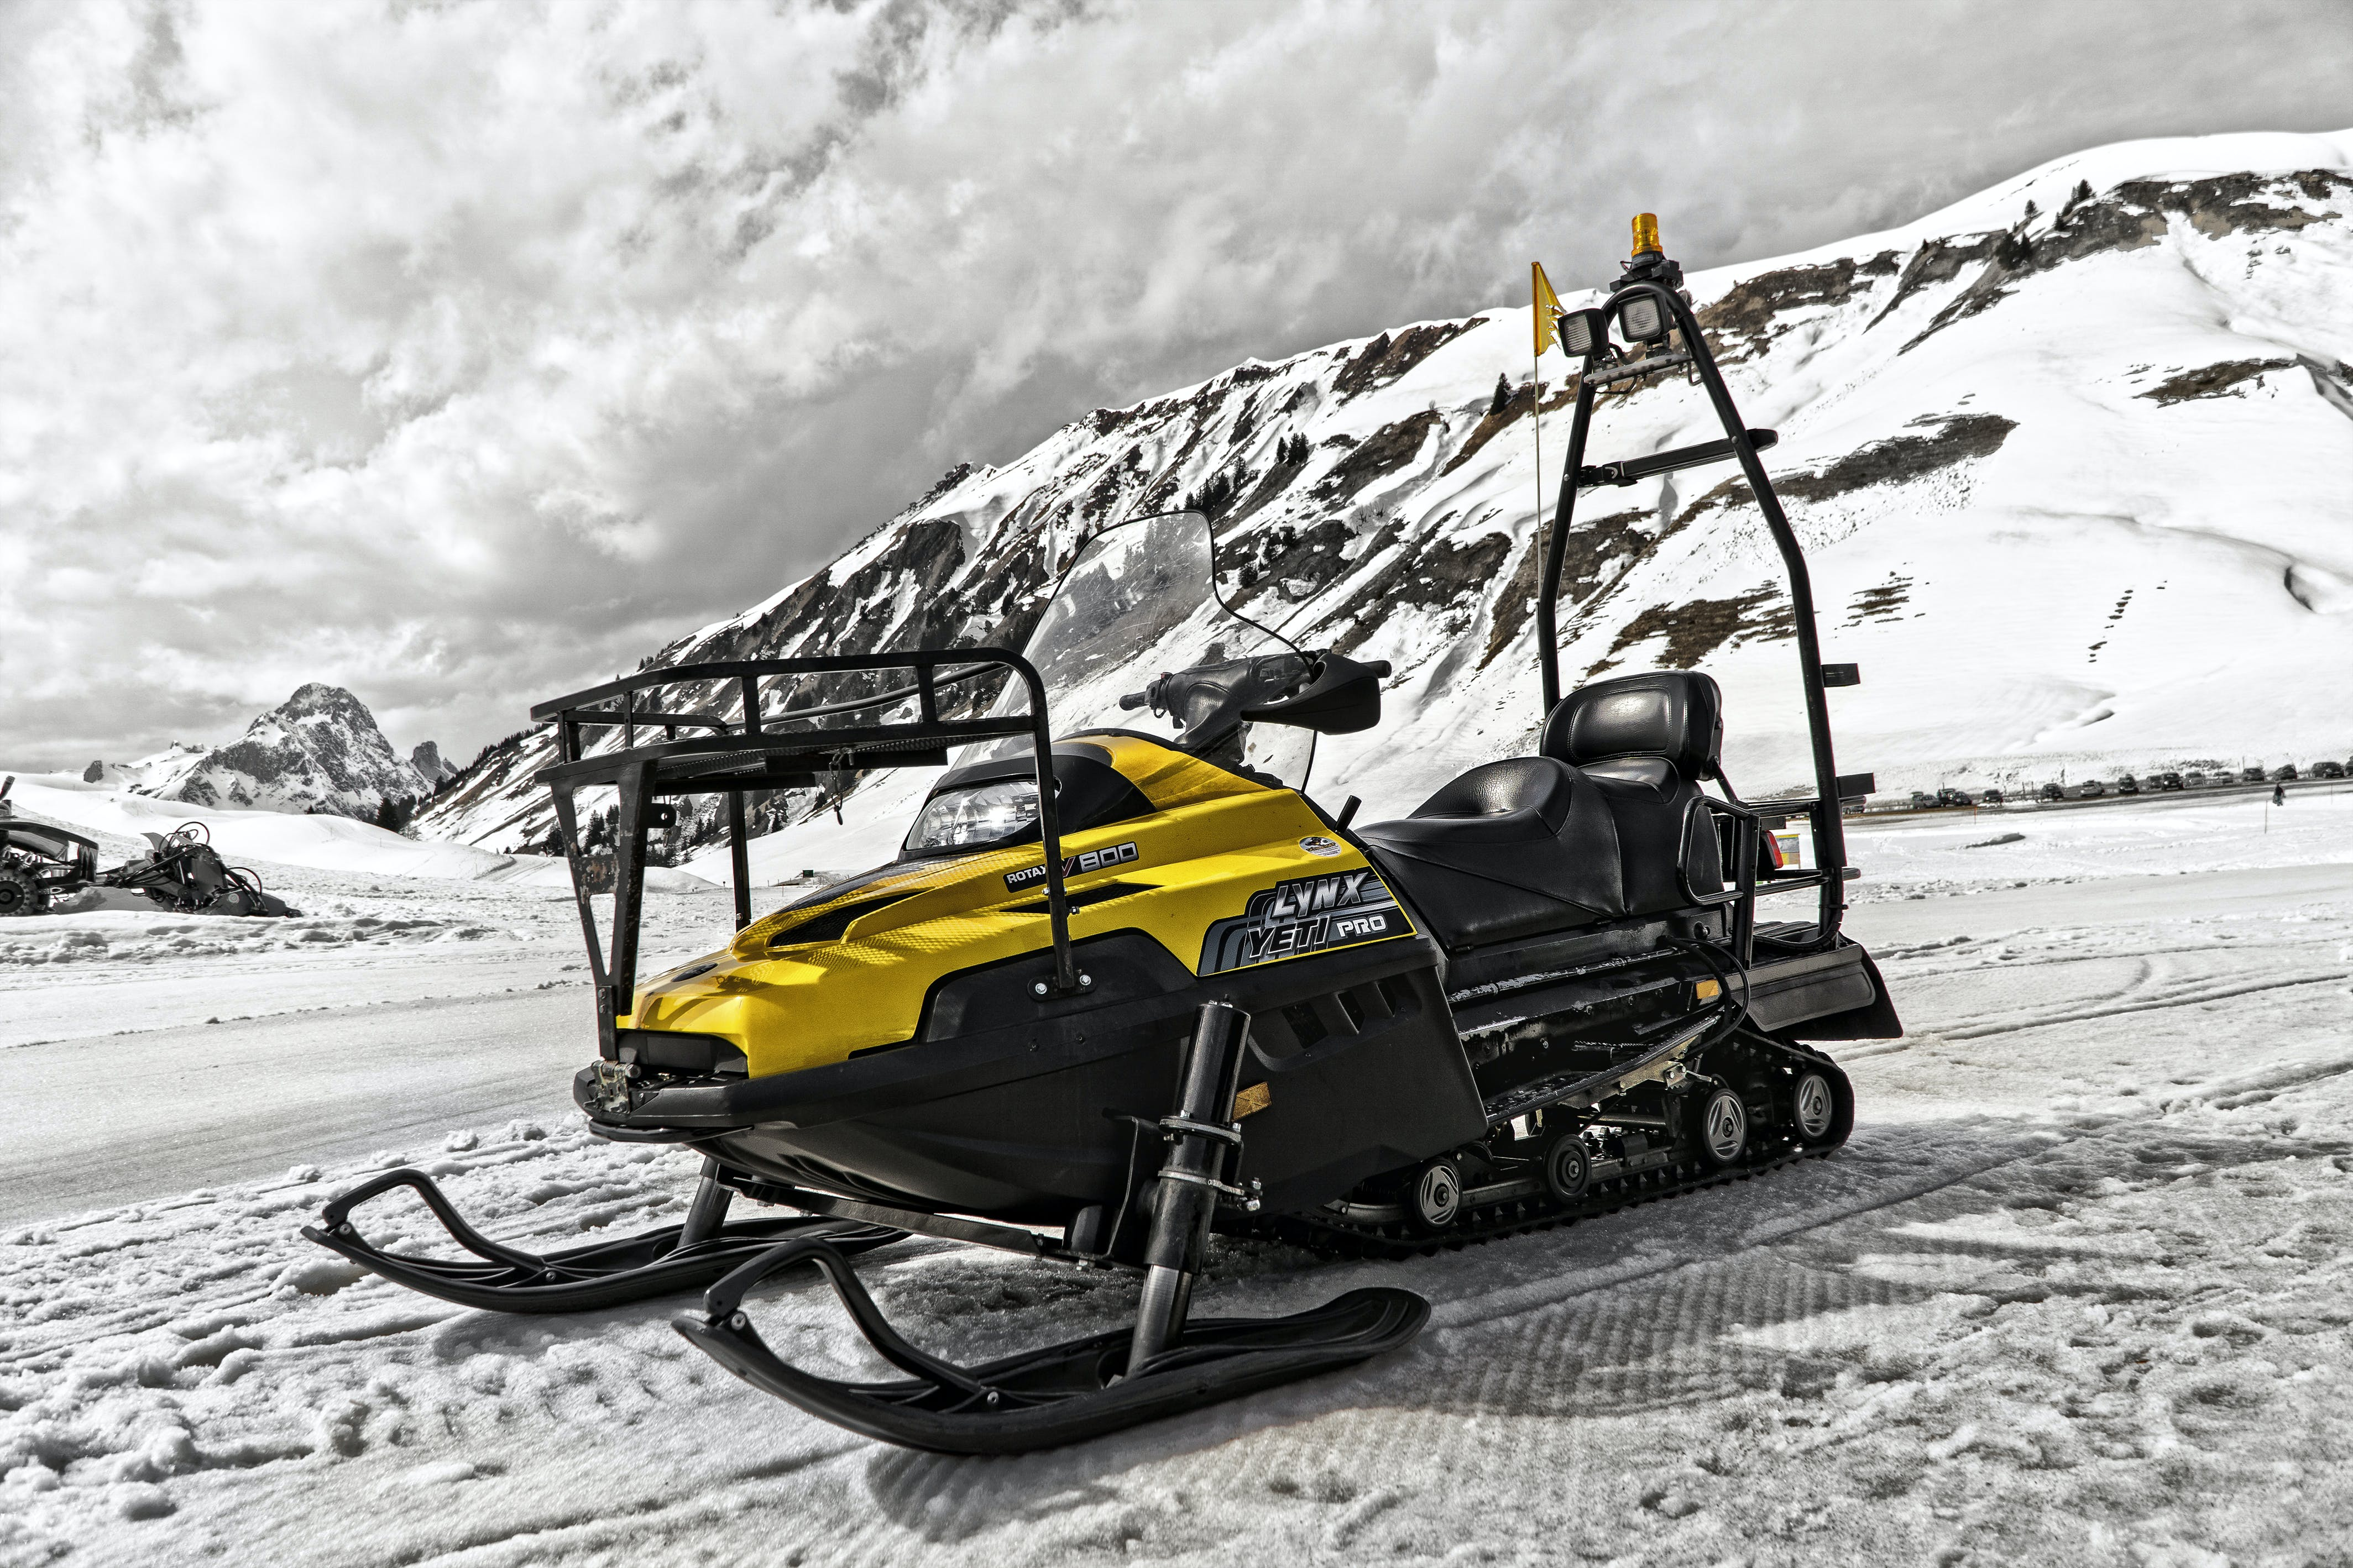 Yellow and Black Snowmobile